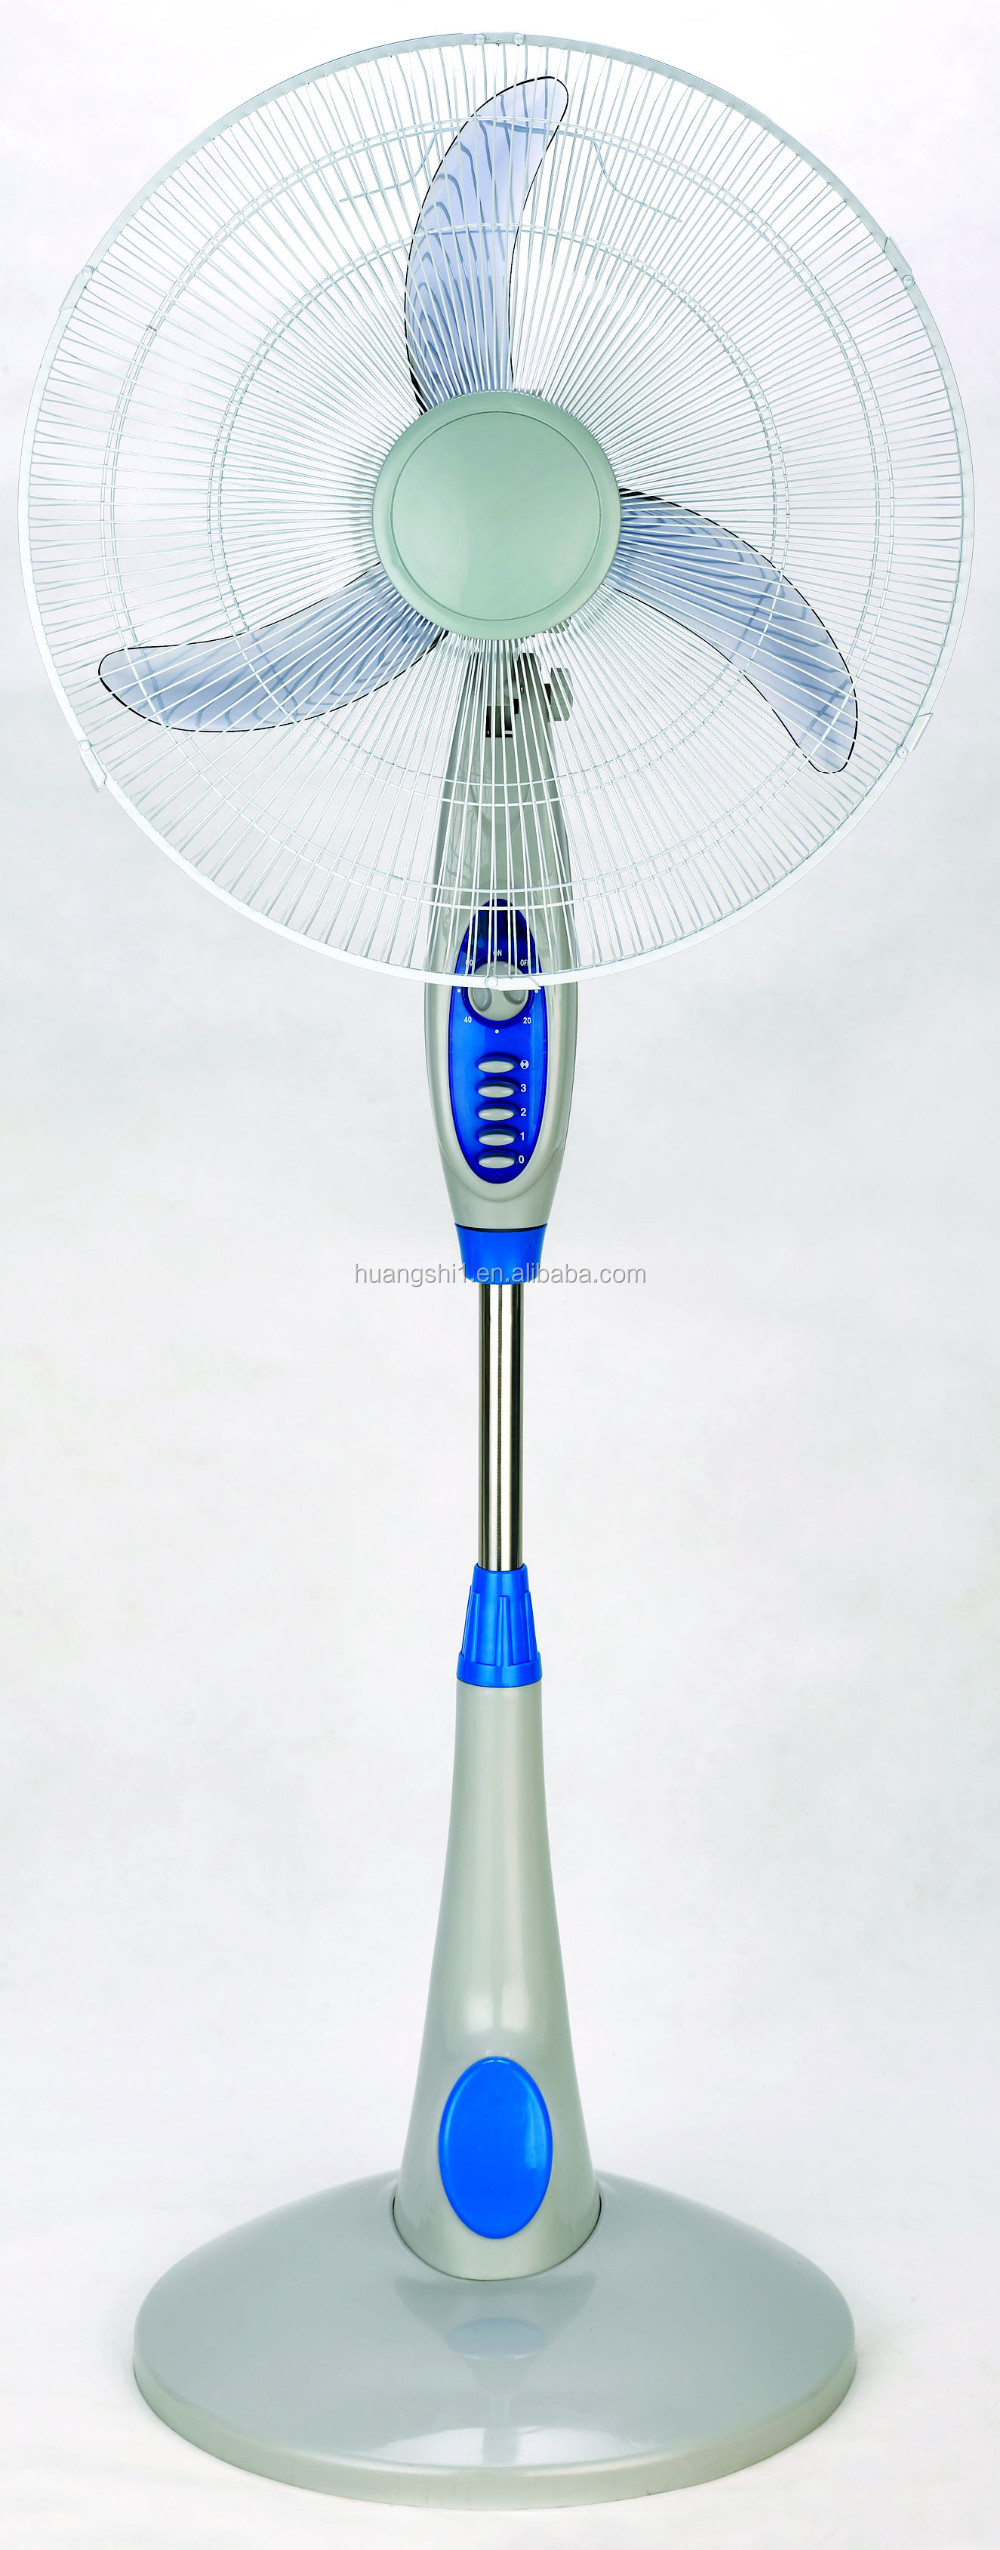 Plastic metal Material and Floor Installation 18 inch Pedestal Oscillating Rotating Standing fan